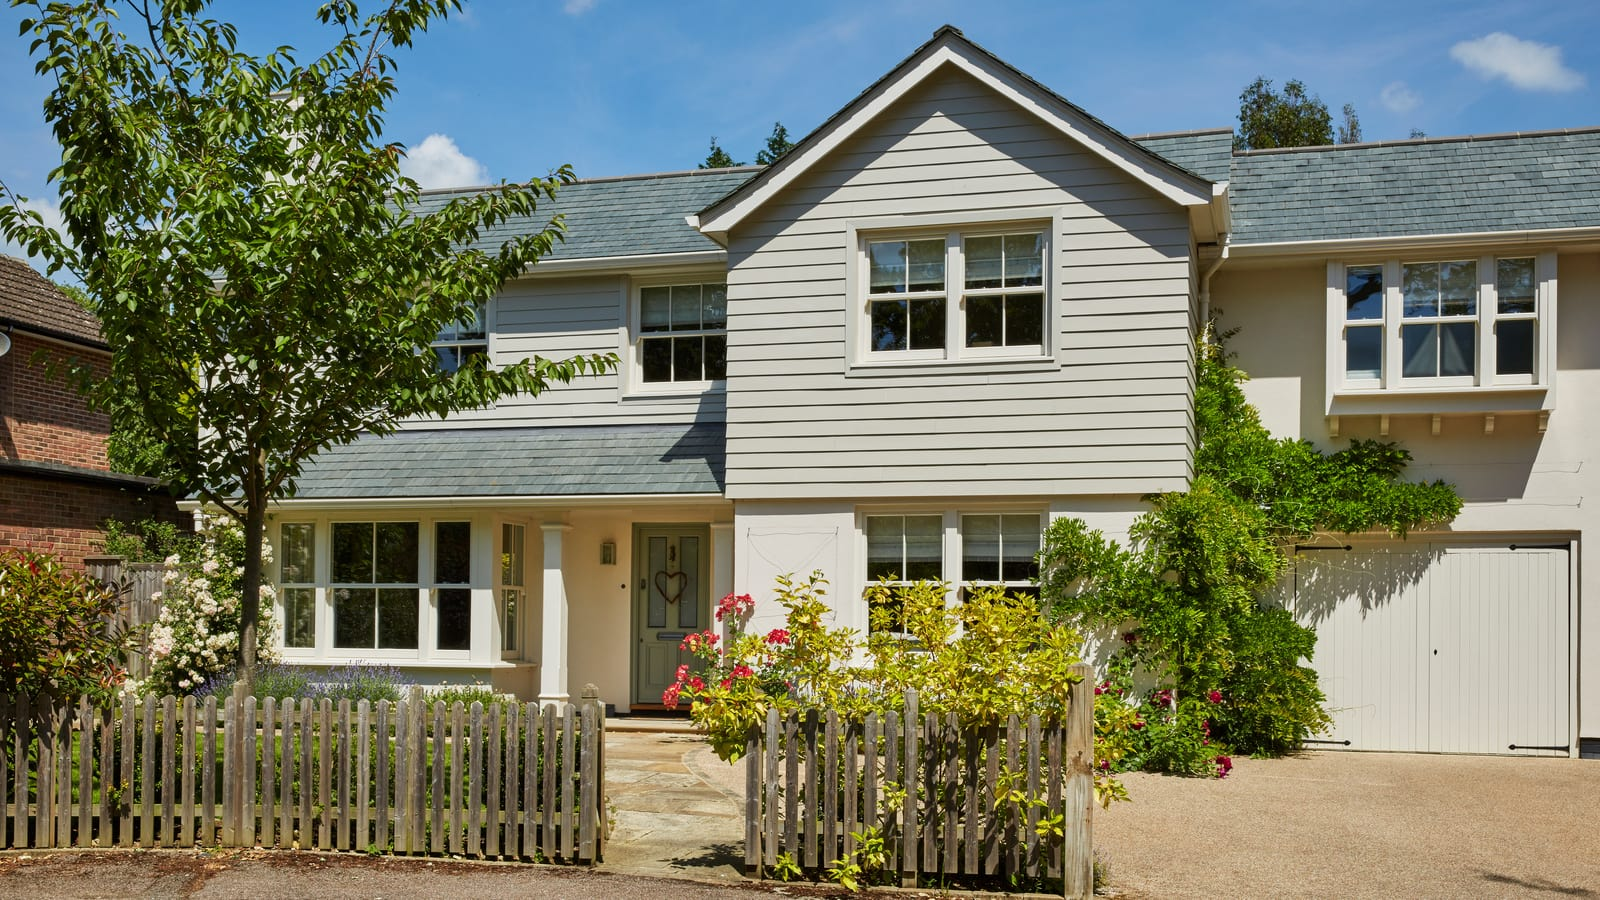 New build with two 90-degree bay windows to enhance the sightlines.